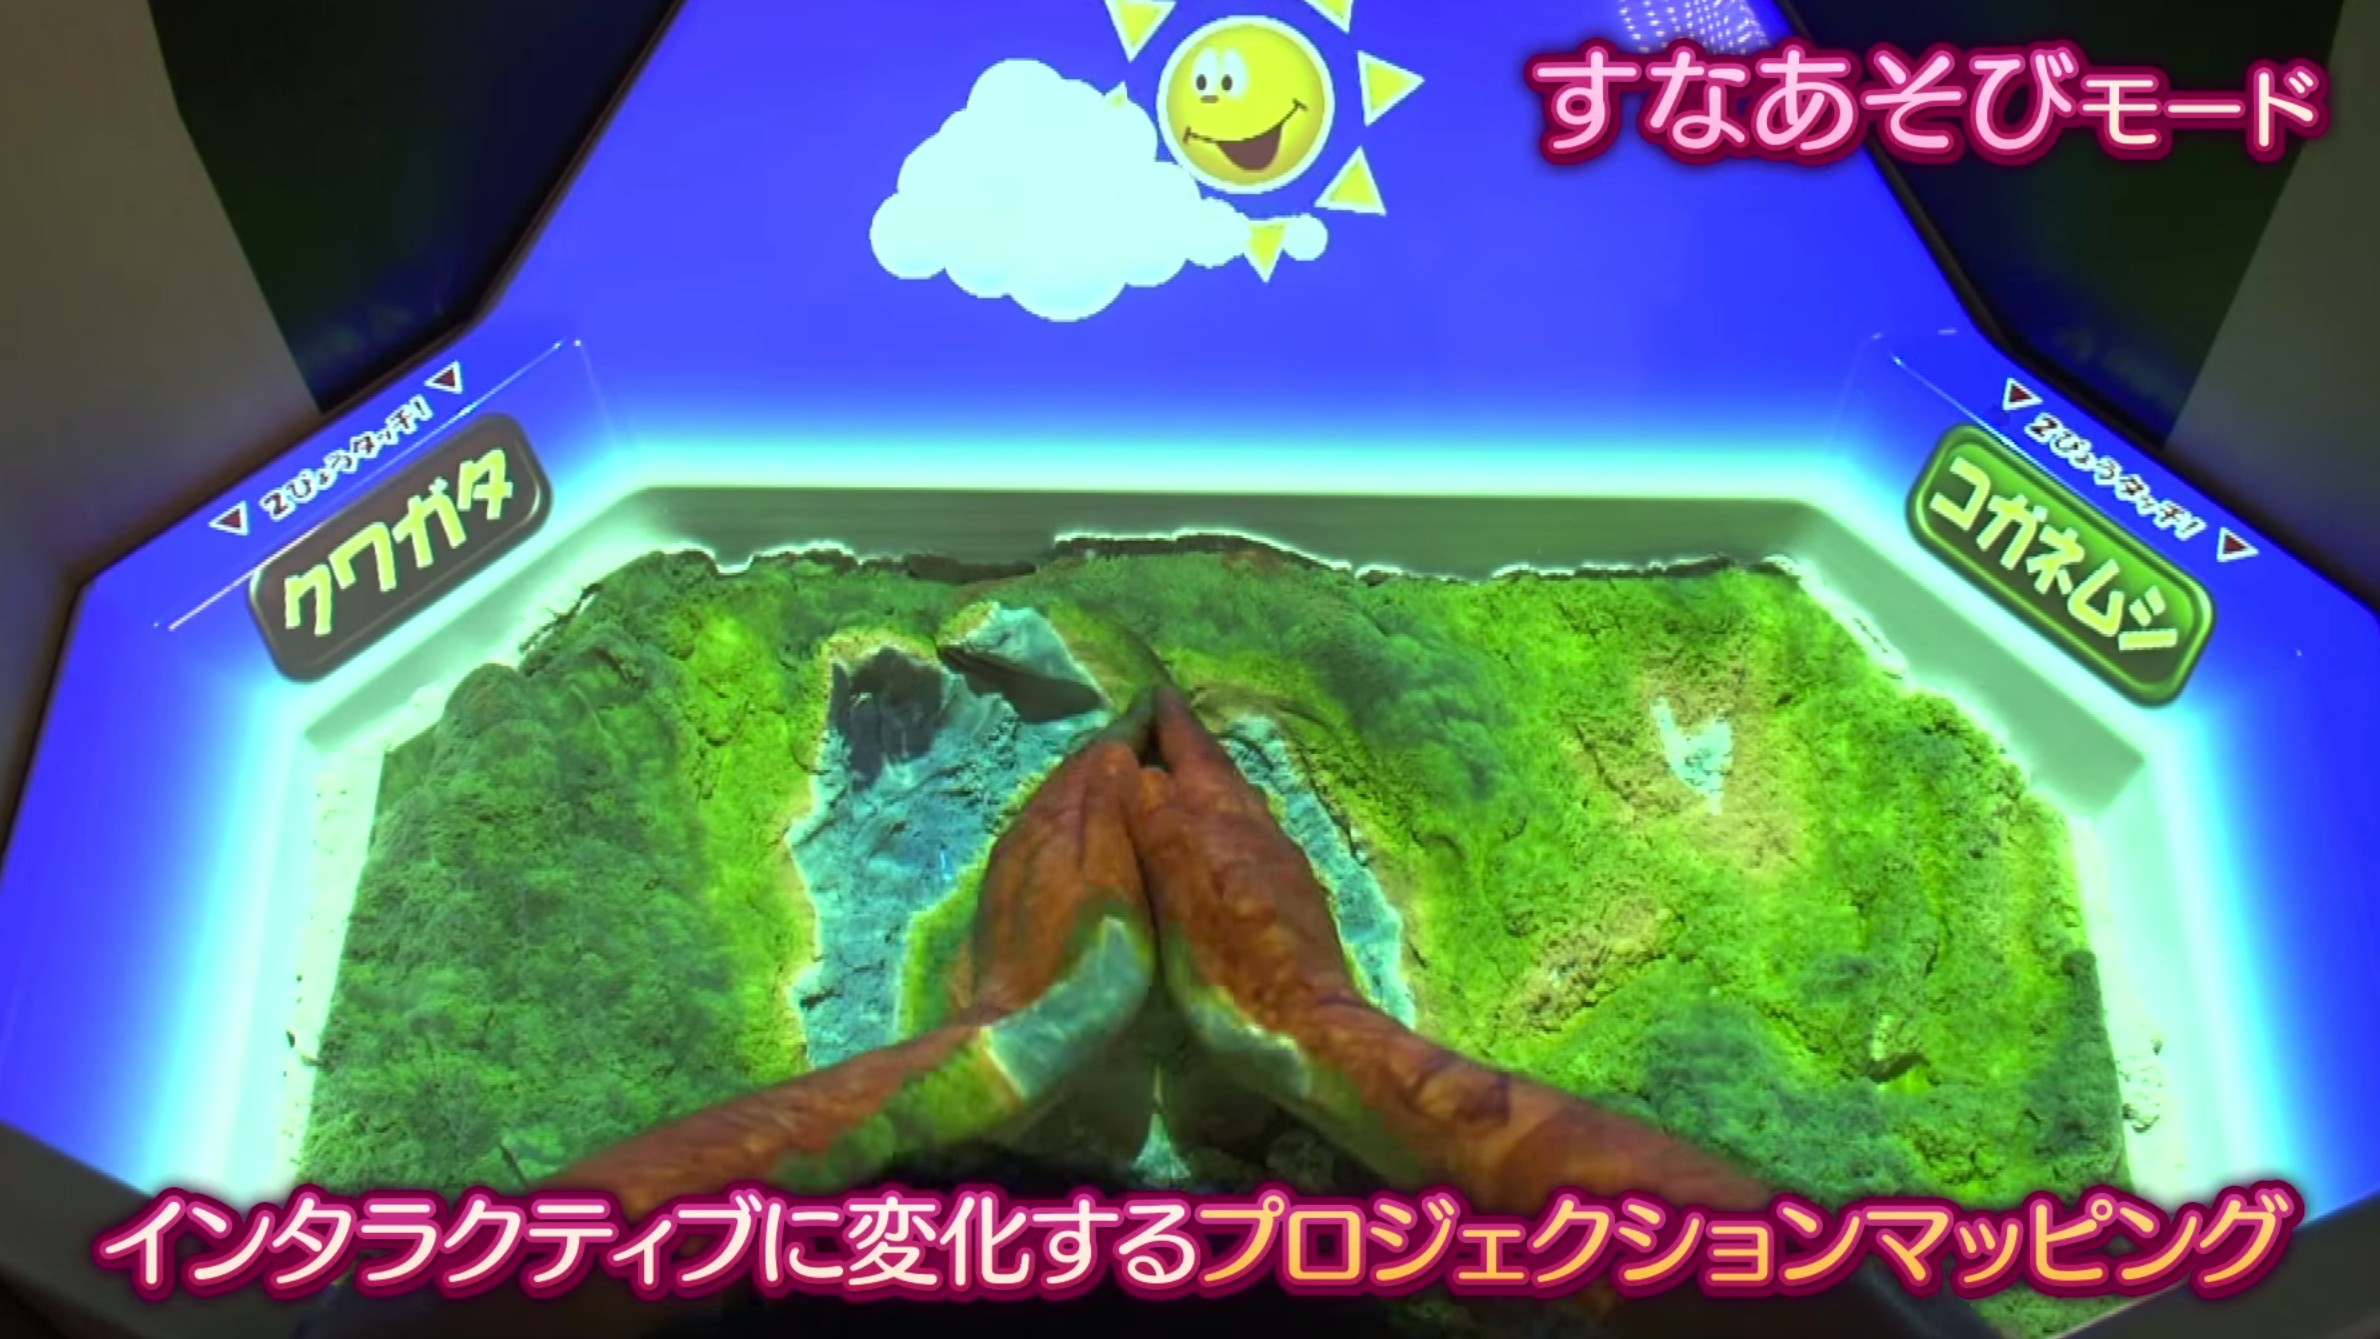 Sega's New Arcade Game Is Based on Sand